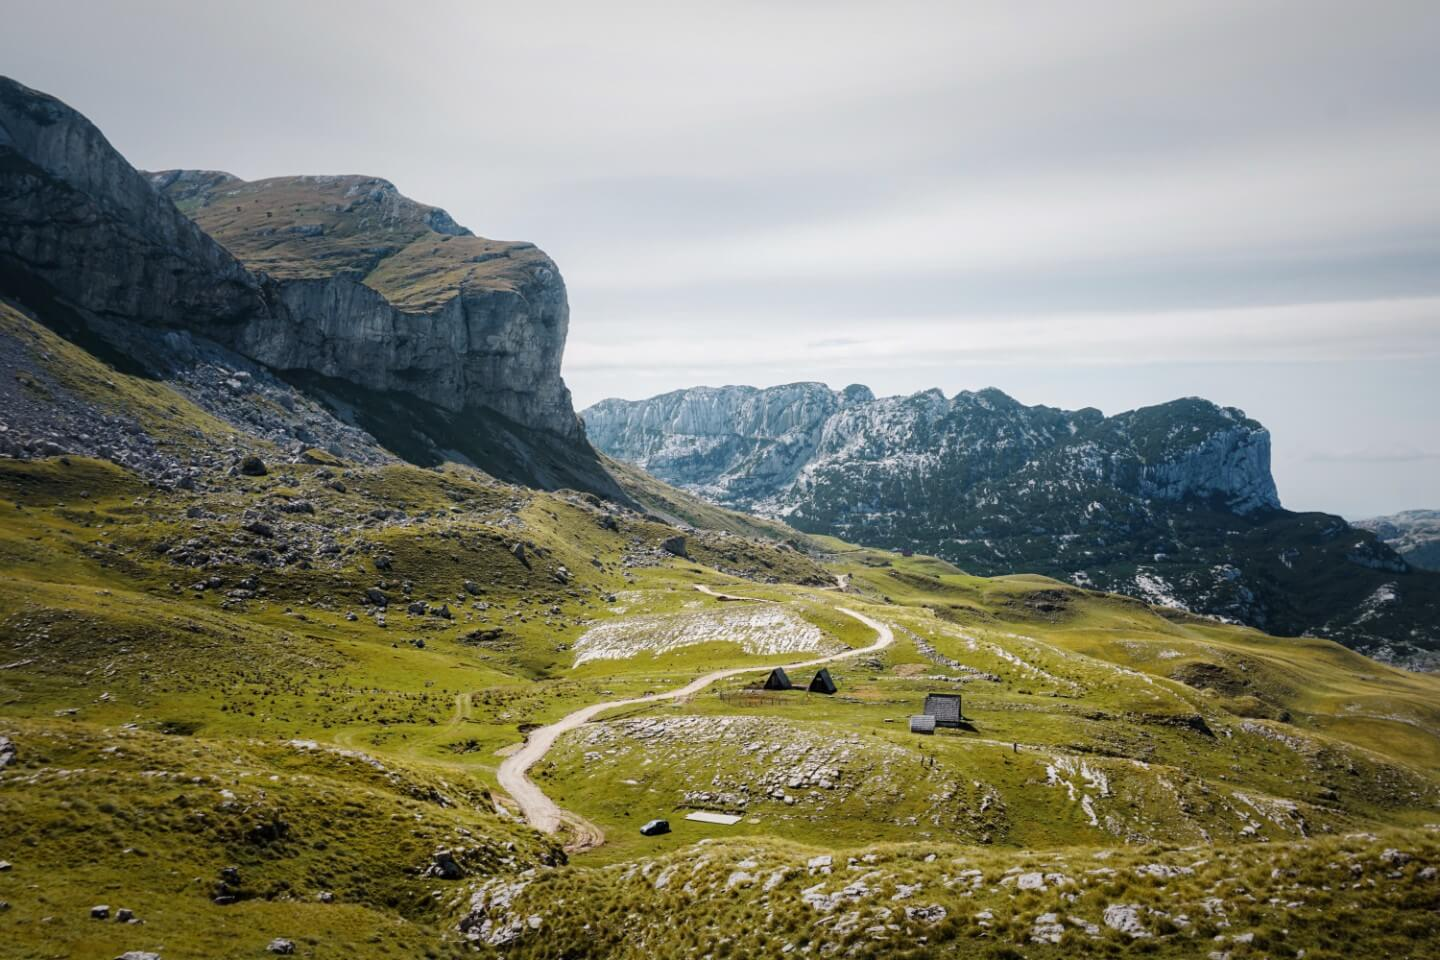 Driving the Scenic Mountain Road P14 through Durmitor National Park, Montenegro Itinerary